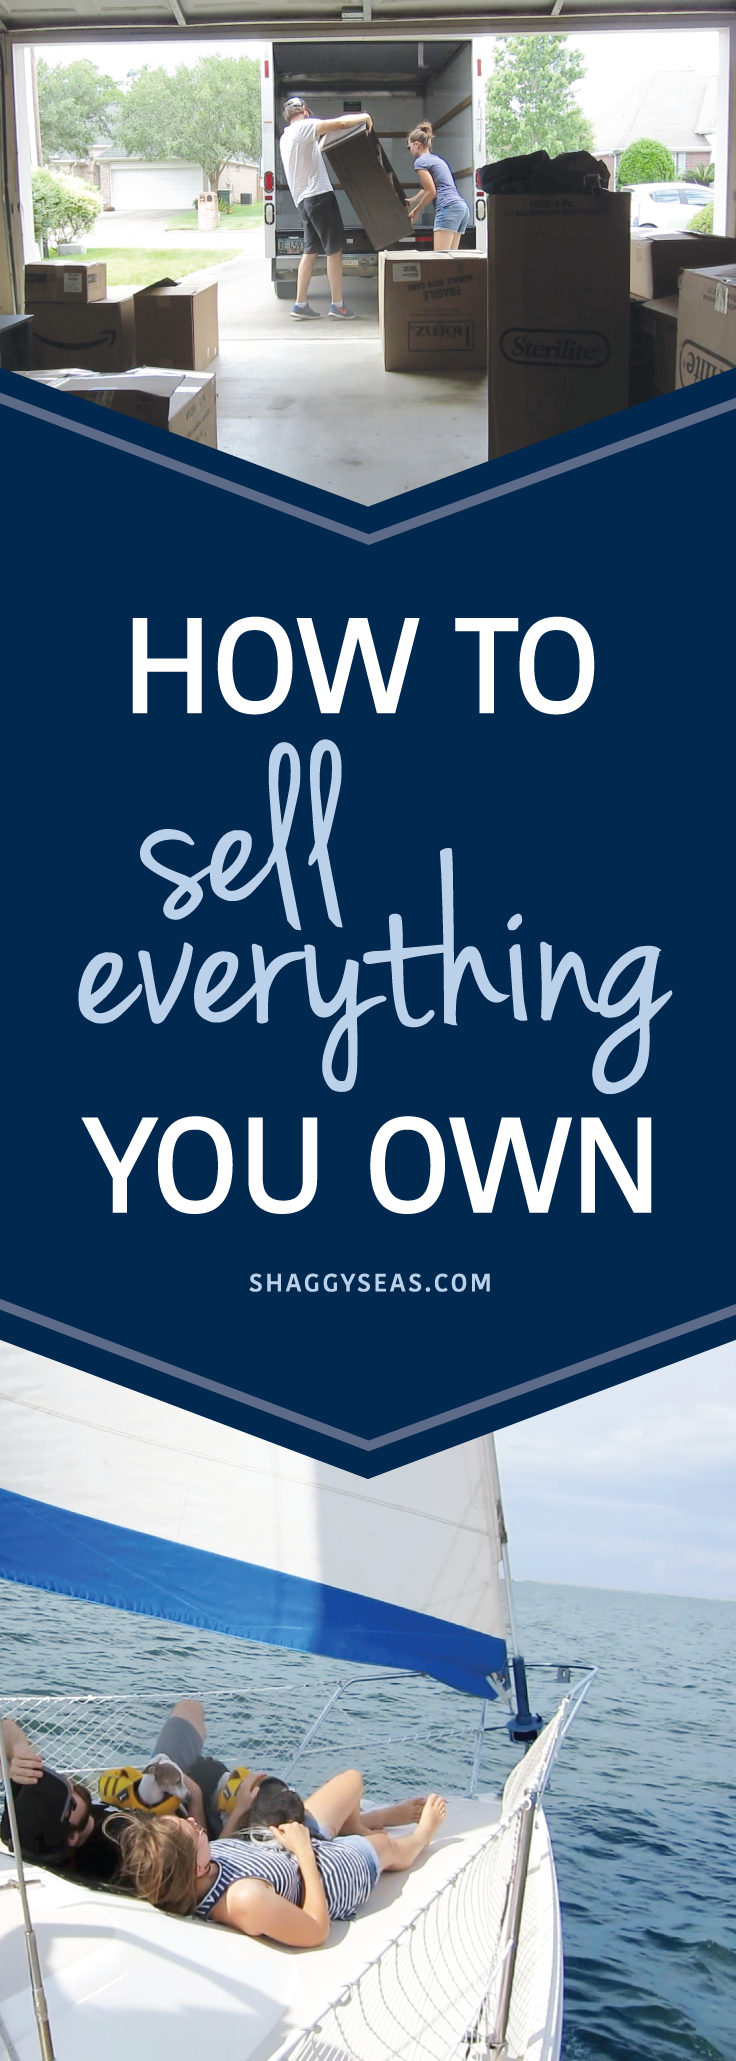 How to Sell Everything You Own-ShaggySeas  Wondering how to downsize to live a minimalist lifestyle traveling the world? Learn how we sold everything to sail the world! From garage sales to selling online and when to sell your stuff, you'll learn the basics to be well on your way to selling everything you own to travel the world!